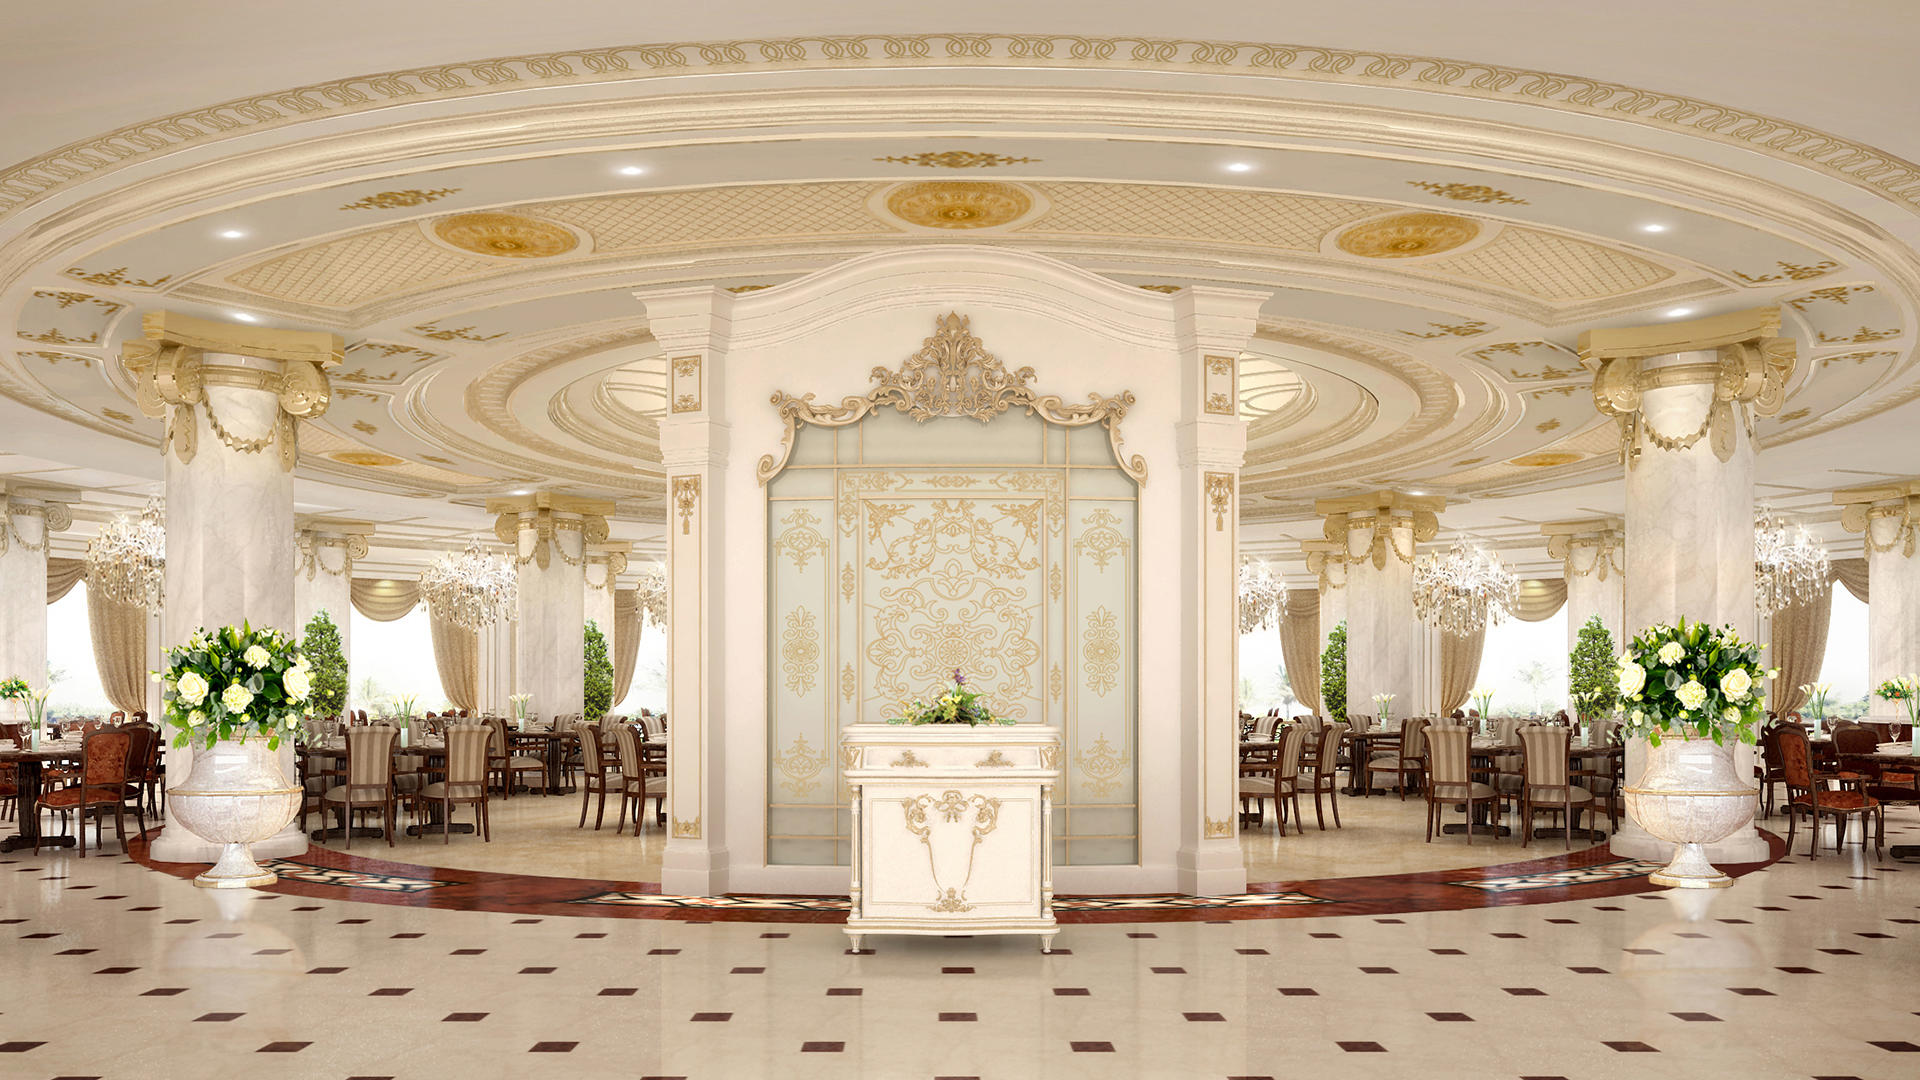 Emerald_Palace_Kempinski_Dubai All_Day_Dining